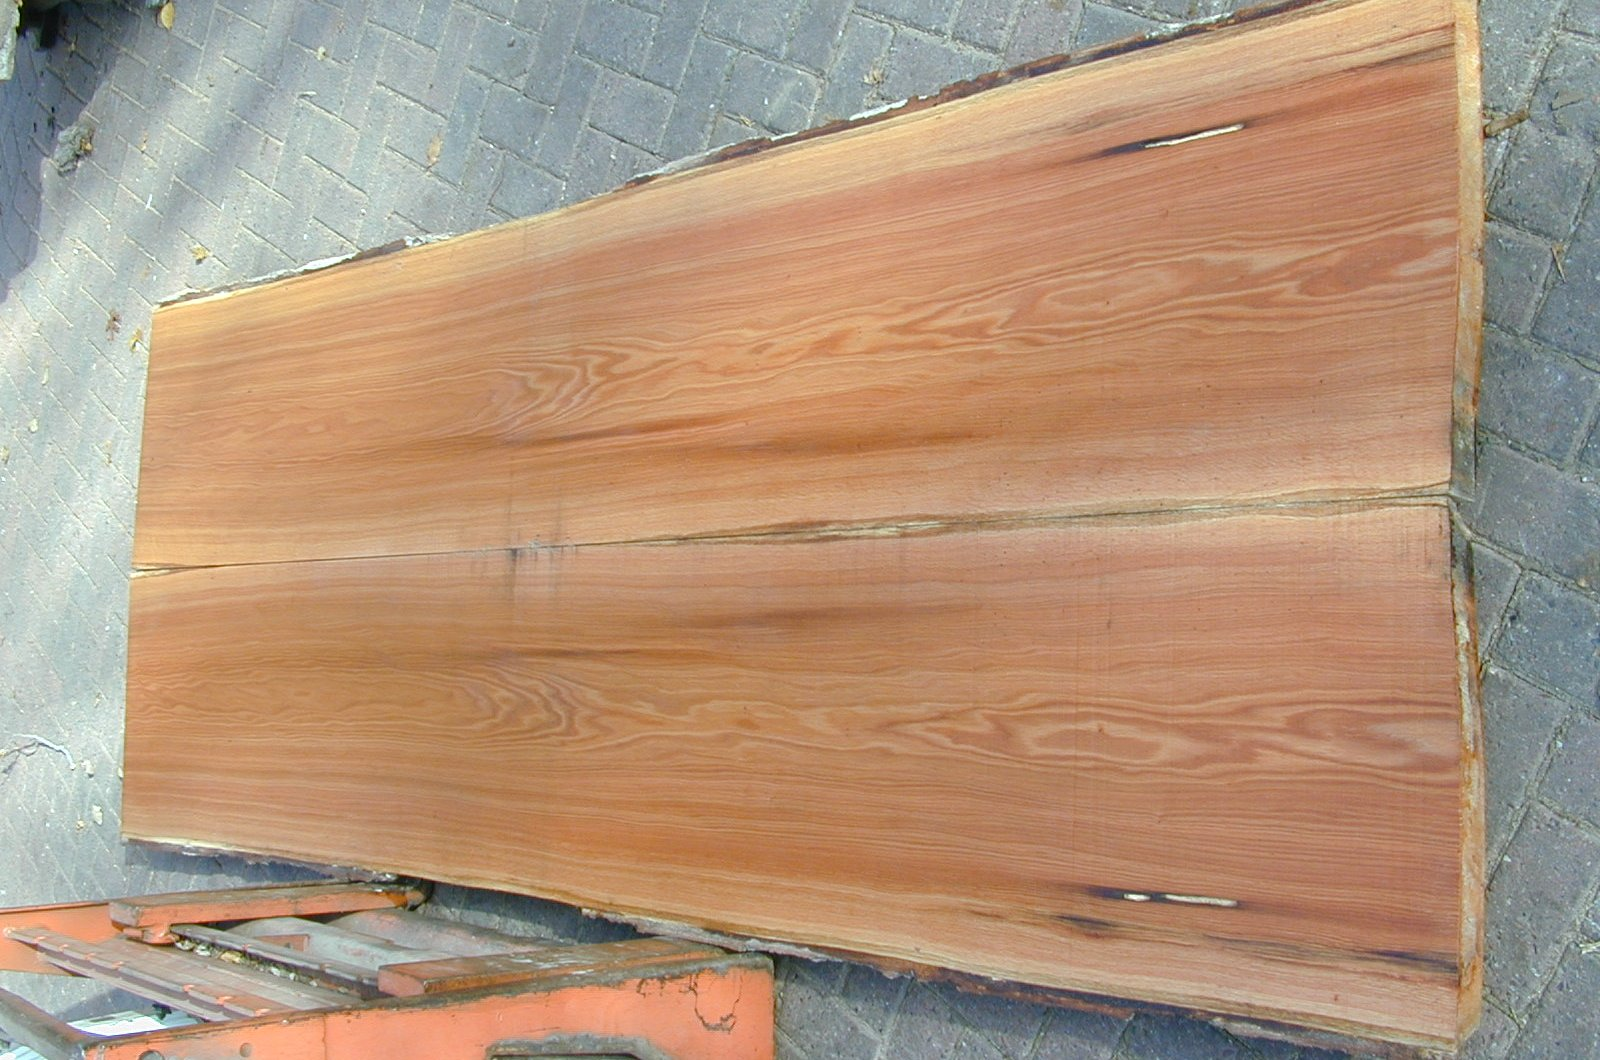 8 4 Bookmatched Red Oak Live Edge Table Top Slabs 1367